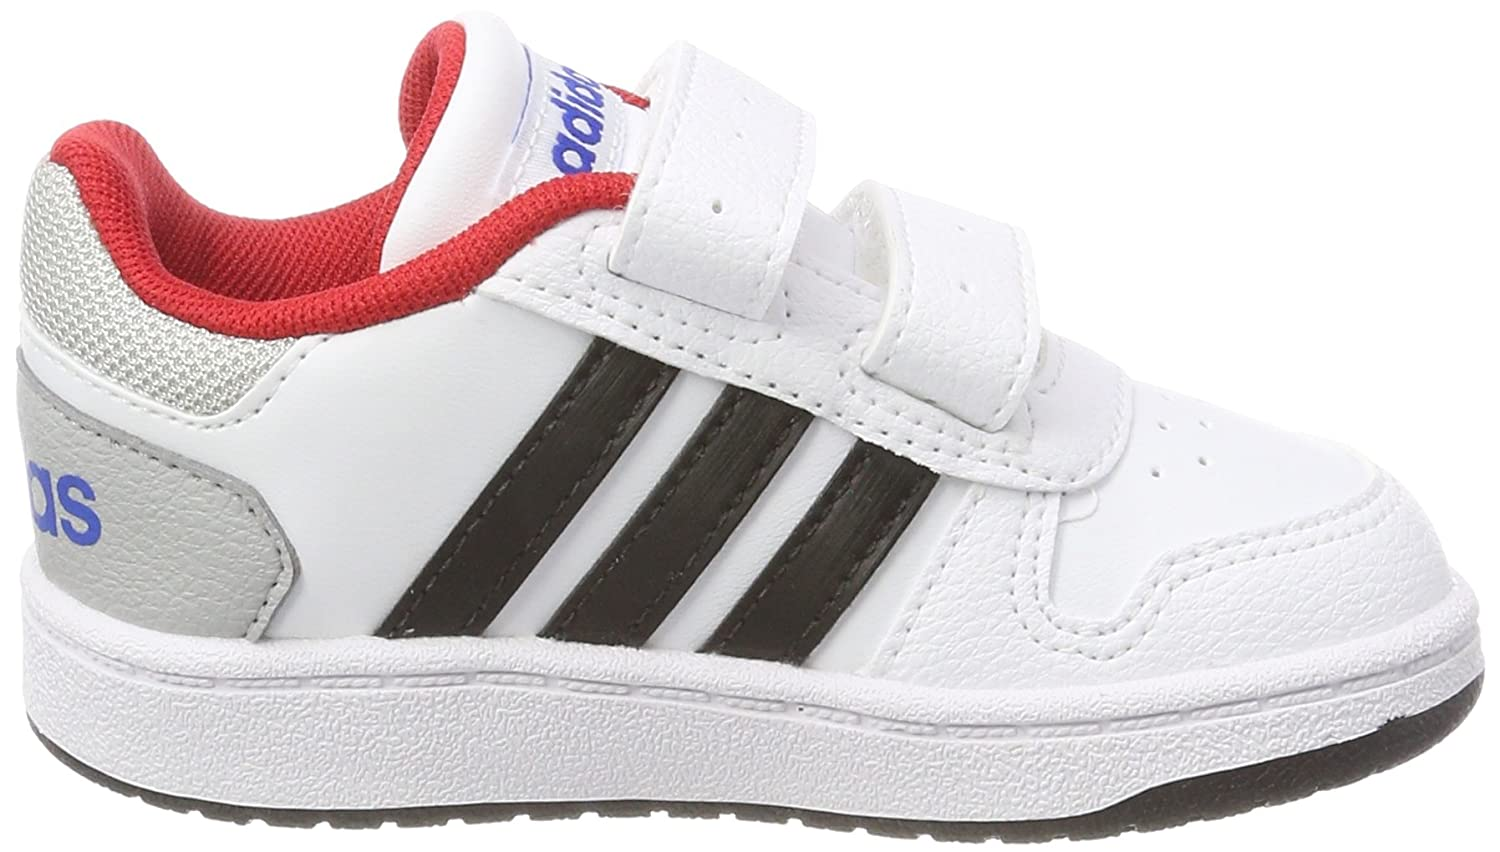 adidas hoops 2.0 cmf i chaussures de fitness mixte enfant